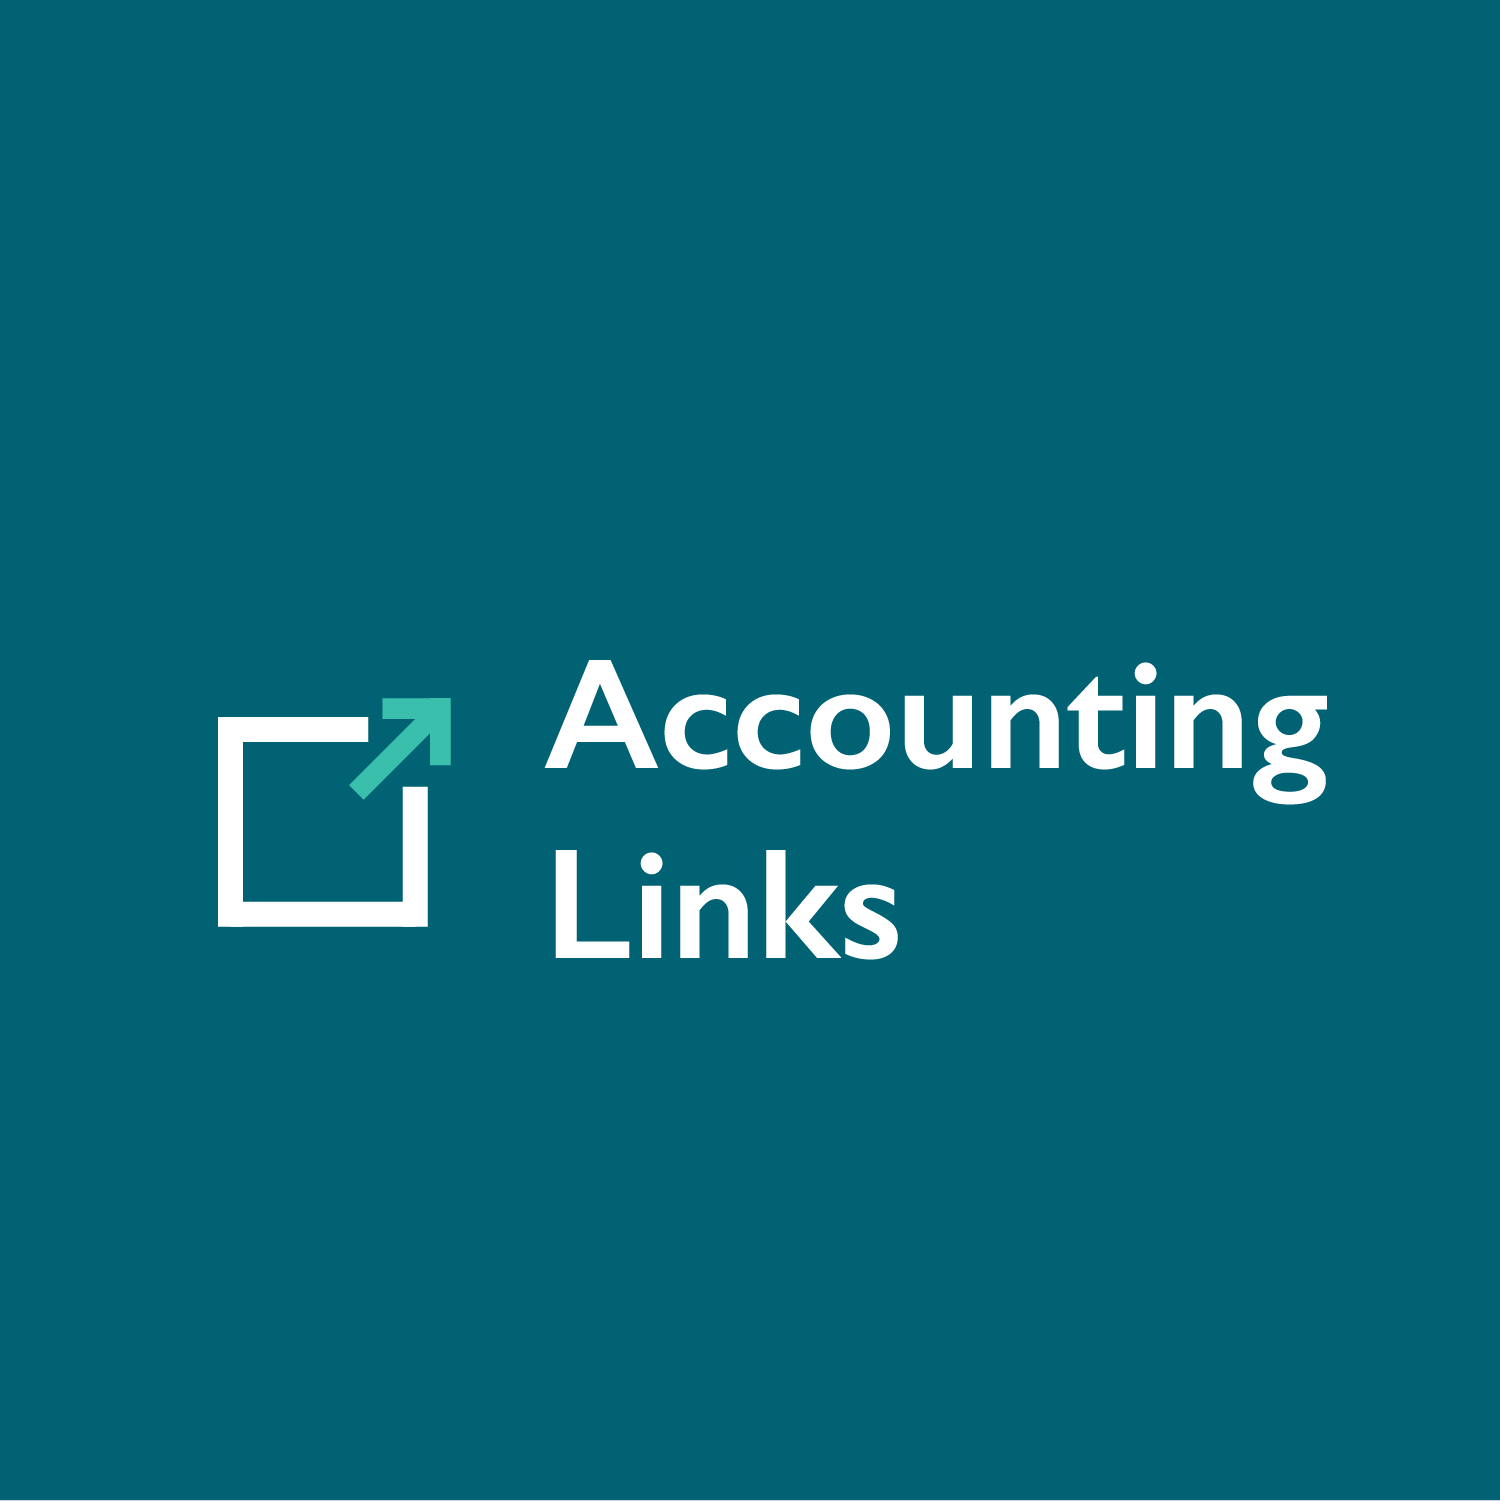 Accounting Links